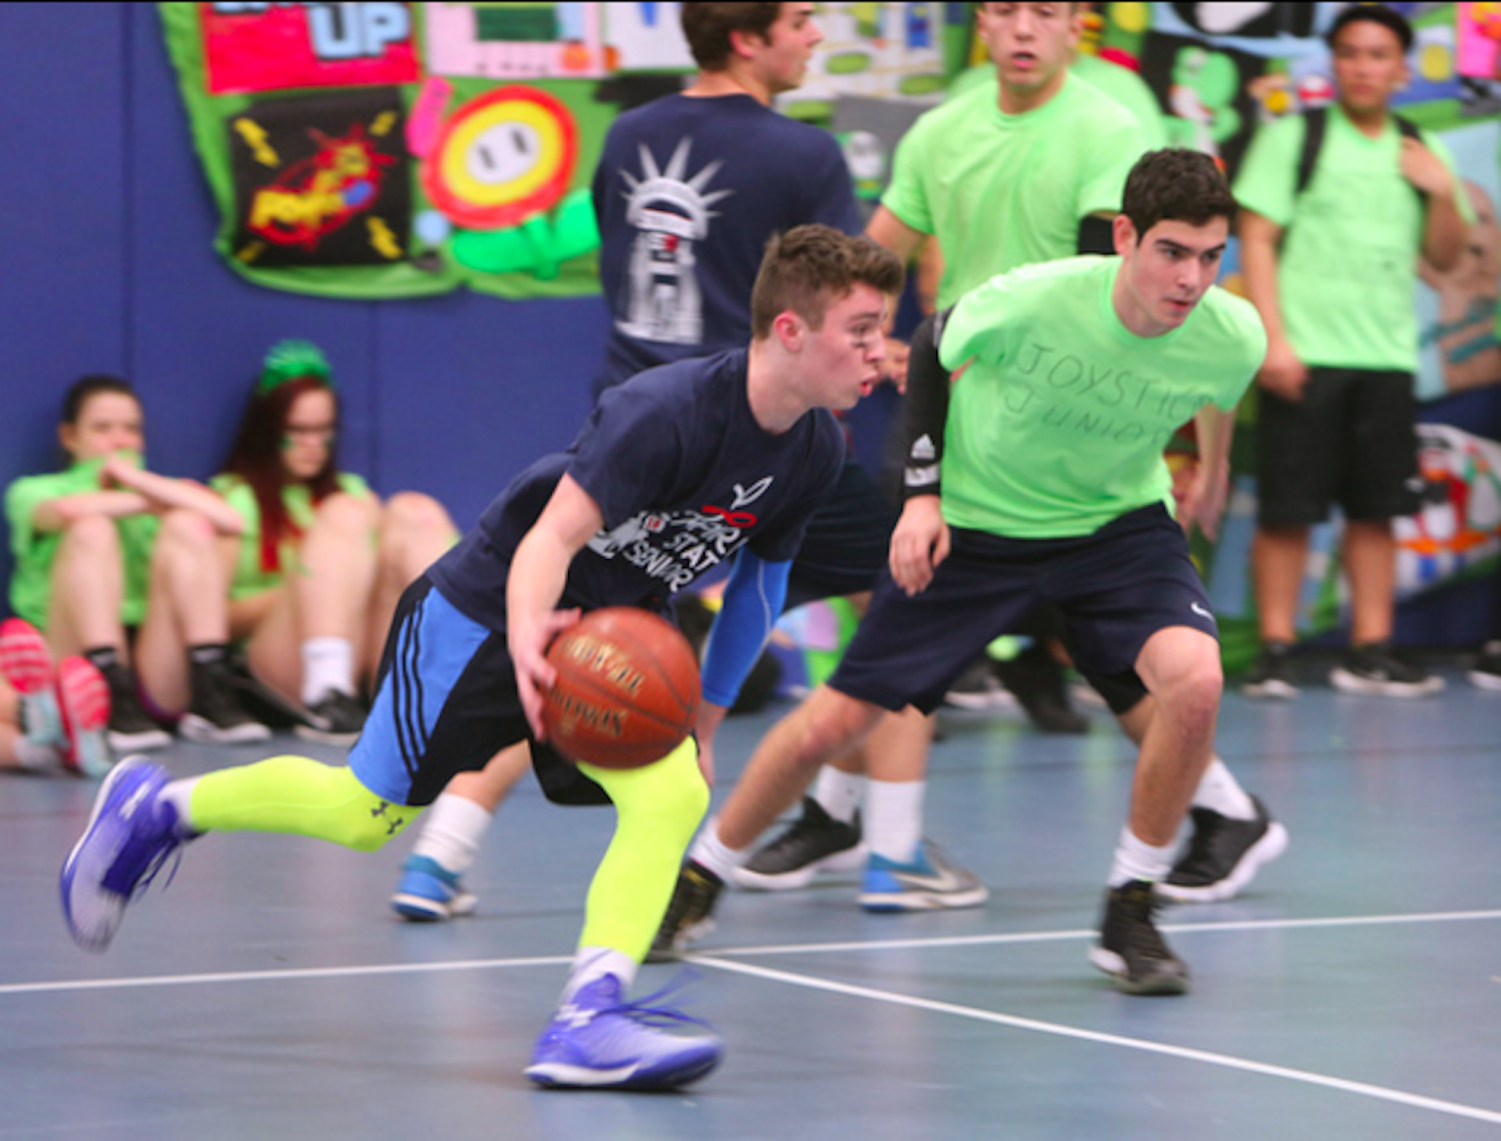 Senior Danny Friedman shows off his basketball skills during Olympics.